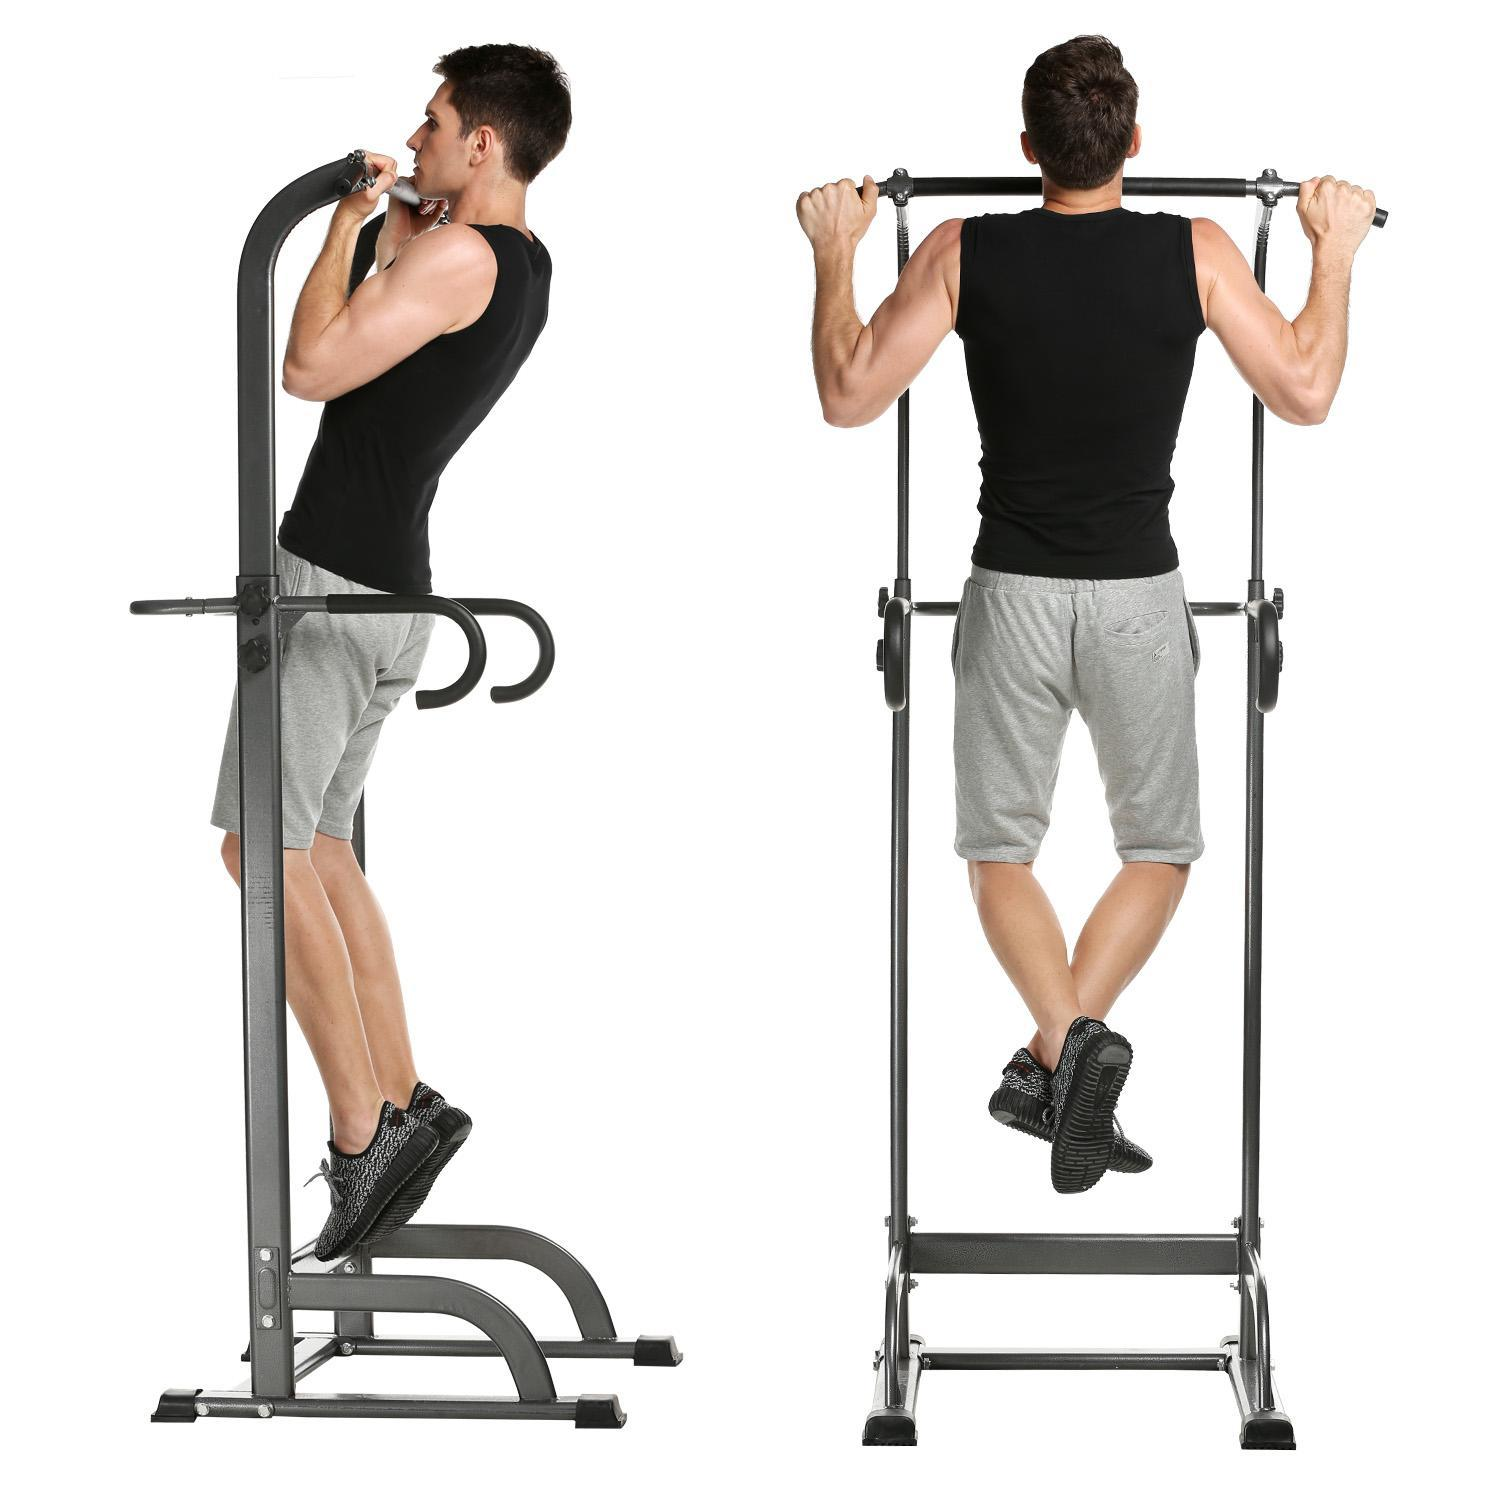 Adjust Height Fitness Power Tower, Strength Training Fitness Equipment Workout Dip Station for Home Gym